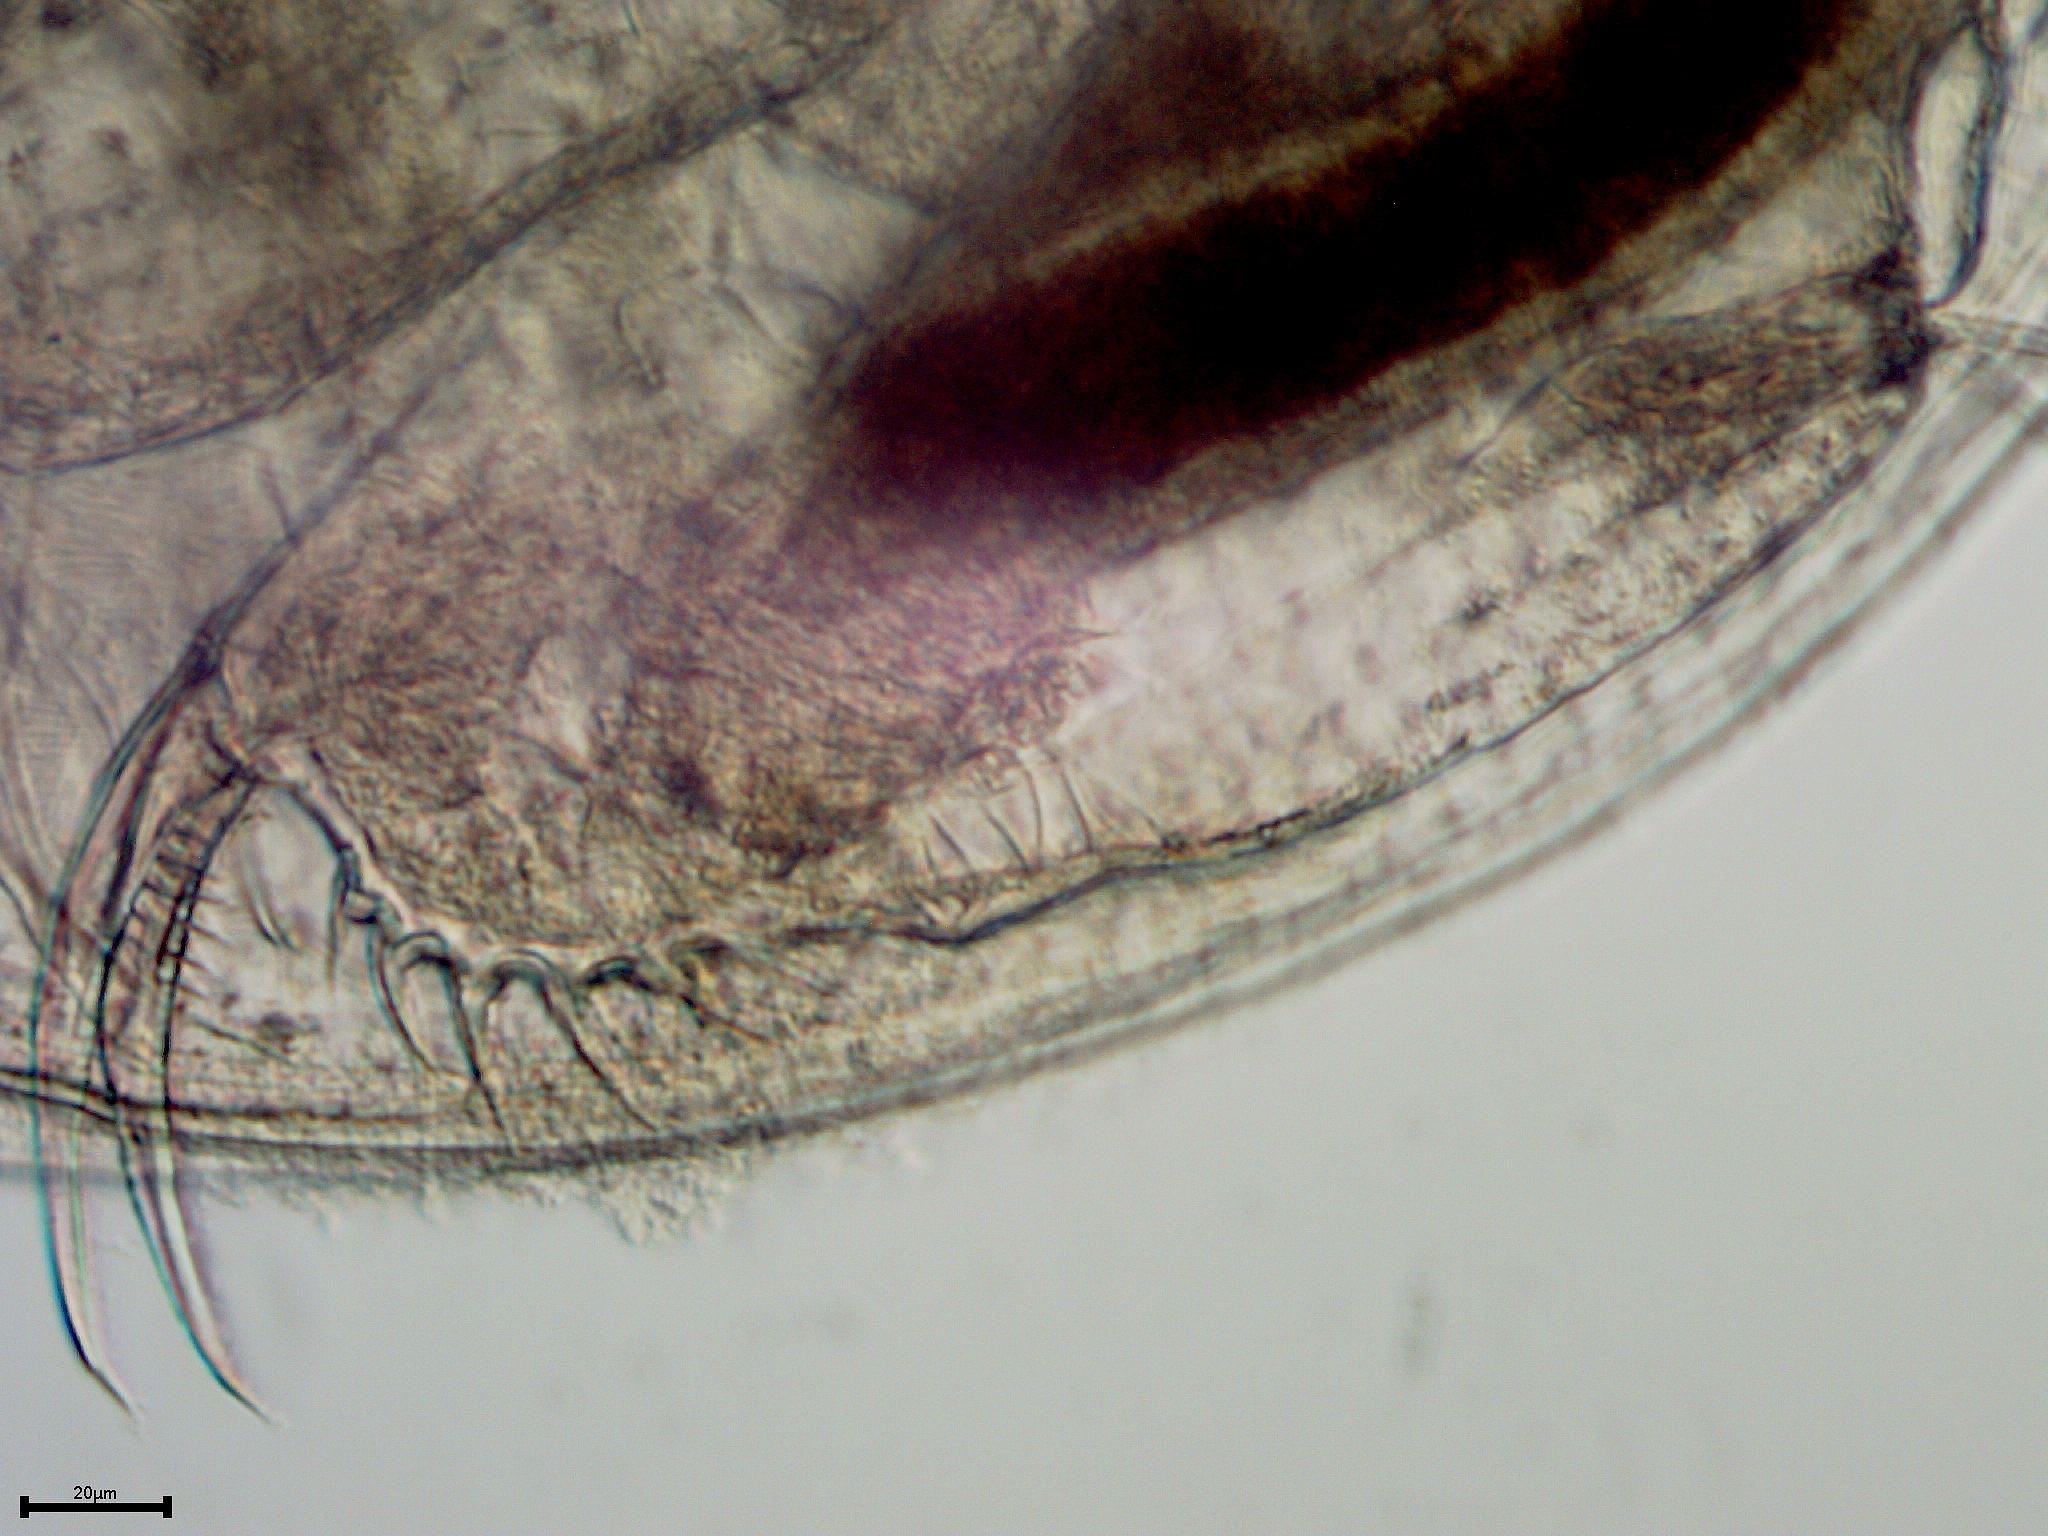 the anatomy of ceriodaphnia The effects of the sumter wastewater treatment plant on the survival and reproduction of ceriodaphnia dubia in chronic toxicity tests introduction to bestiality and zoophilia anonymous proxy.